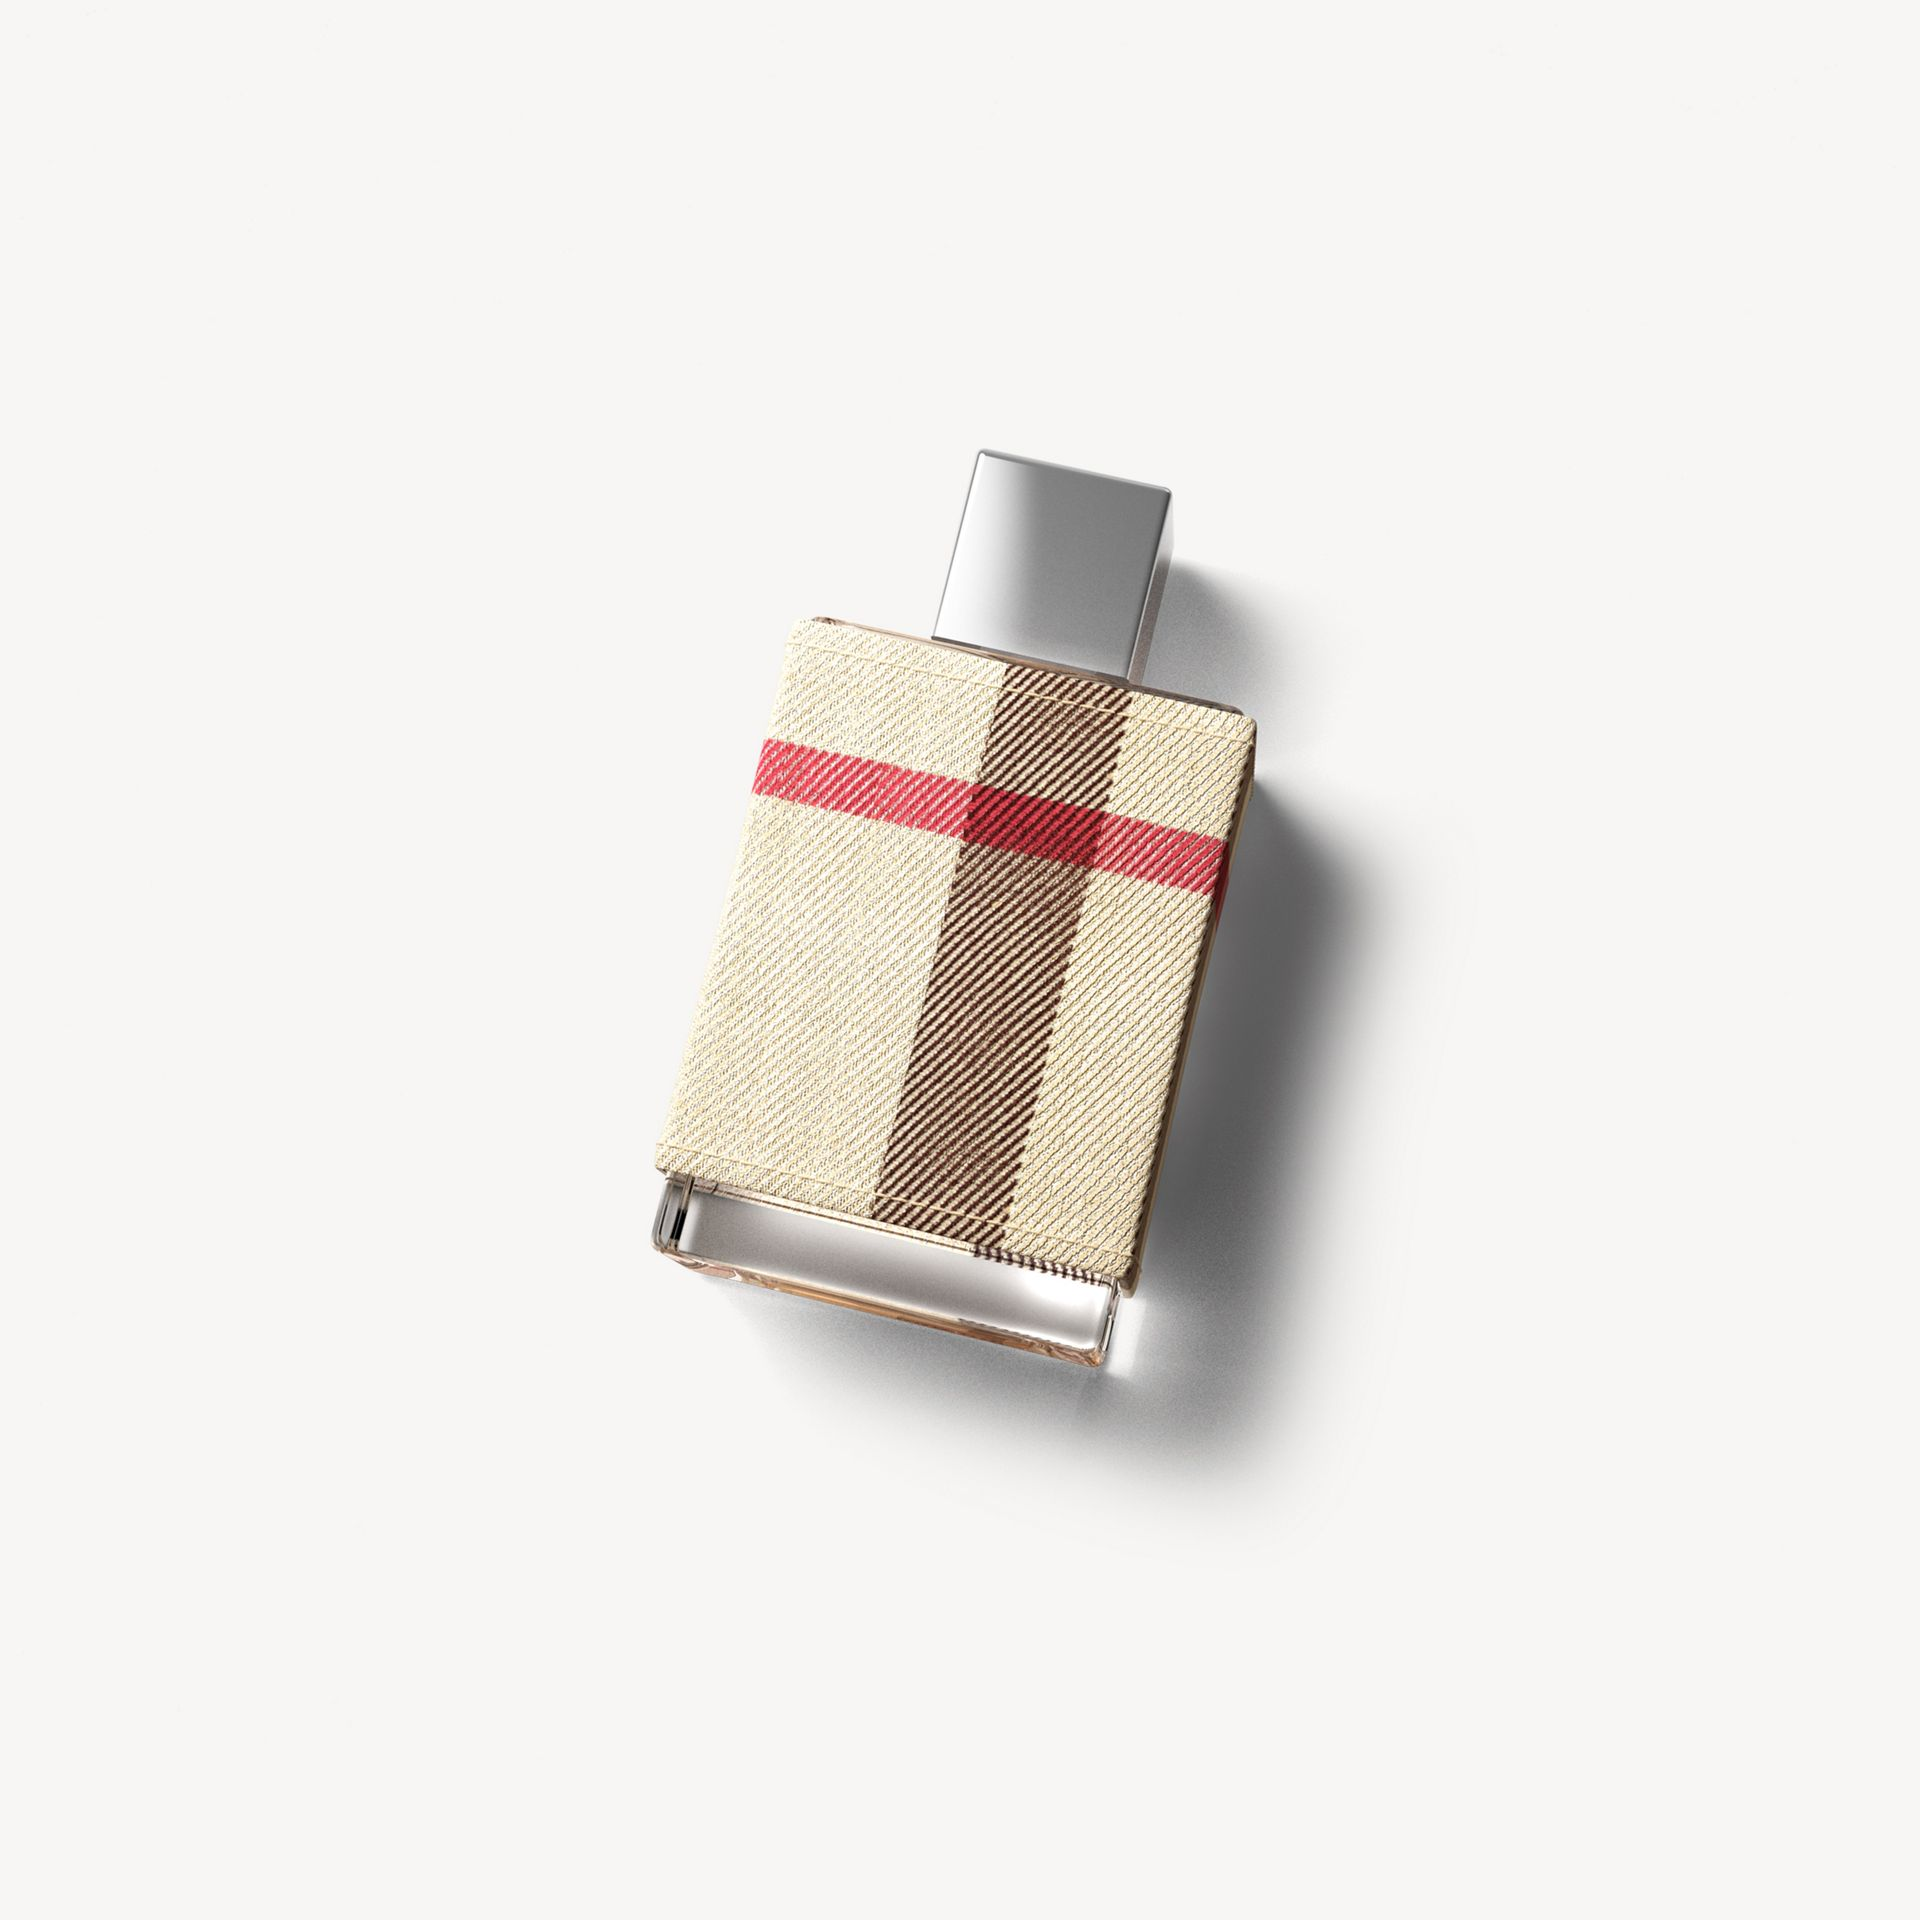 Burberry London Eau de Parfum 50ml in Check - Women | Burberry - gallery image 1